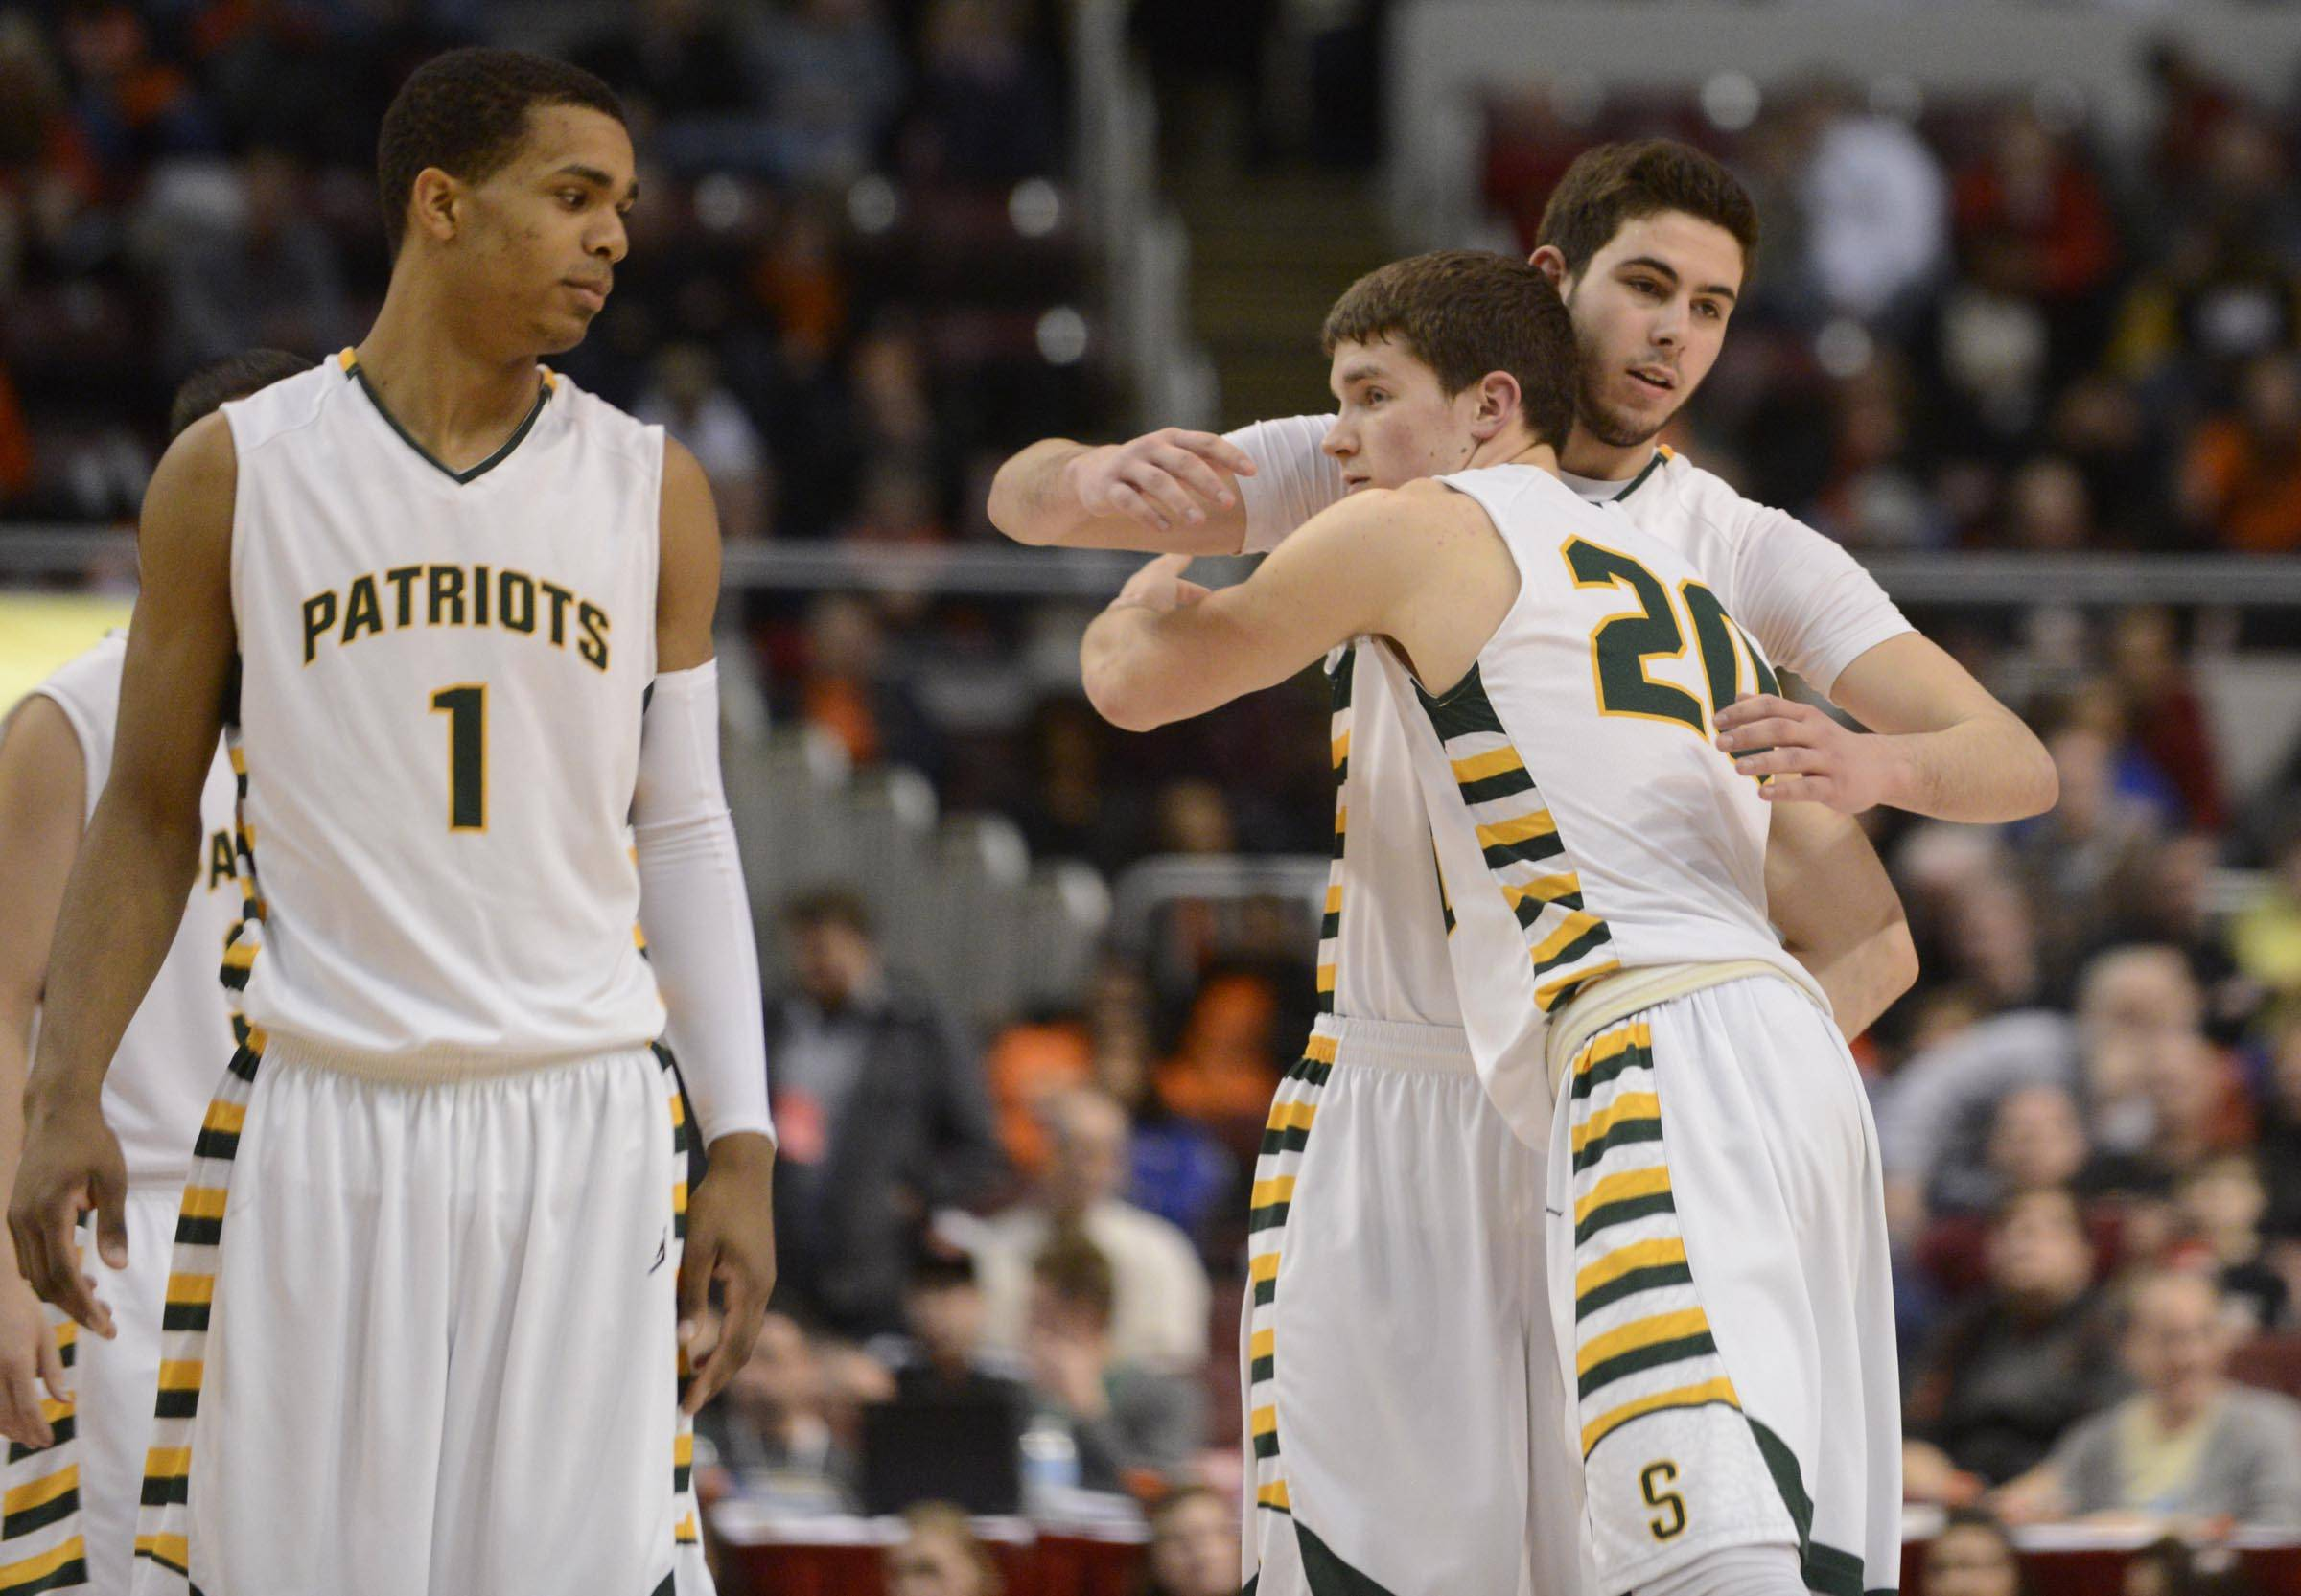 Stevenson's Connor Cashaw watches as Matt Morrissey hugs Parker Nichols before exiting the game in the final seconds of the Patriots' 70-63 win over Edwardsville in the Class 4A third-place game at Carver Arena in Peoria on Saturday.